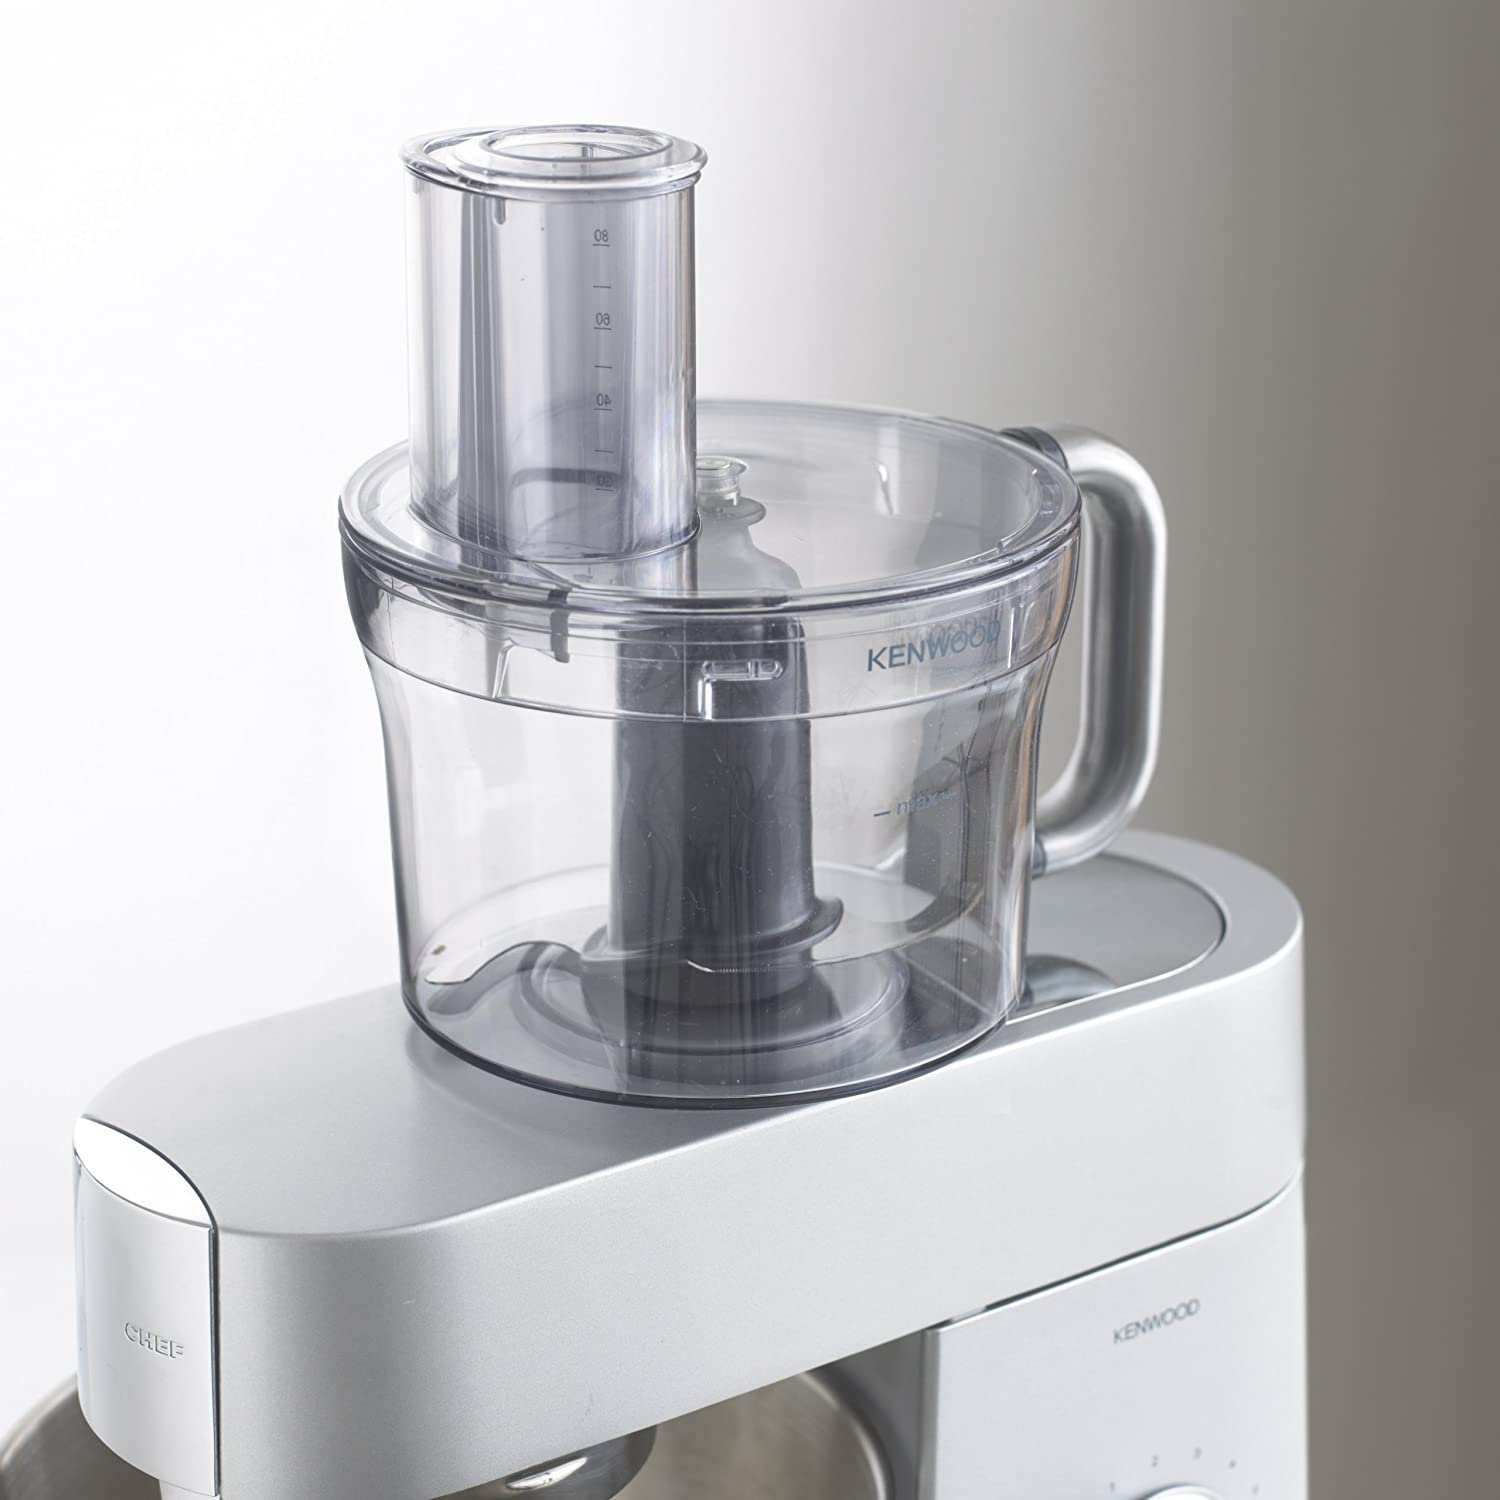 Kenwood AT647 Food Processor Accessory for Food Processor Models of ...